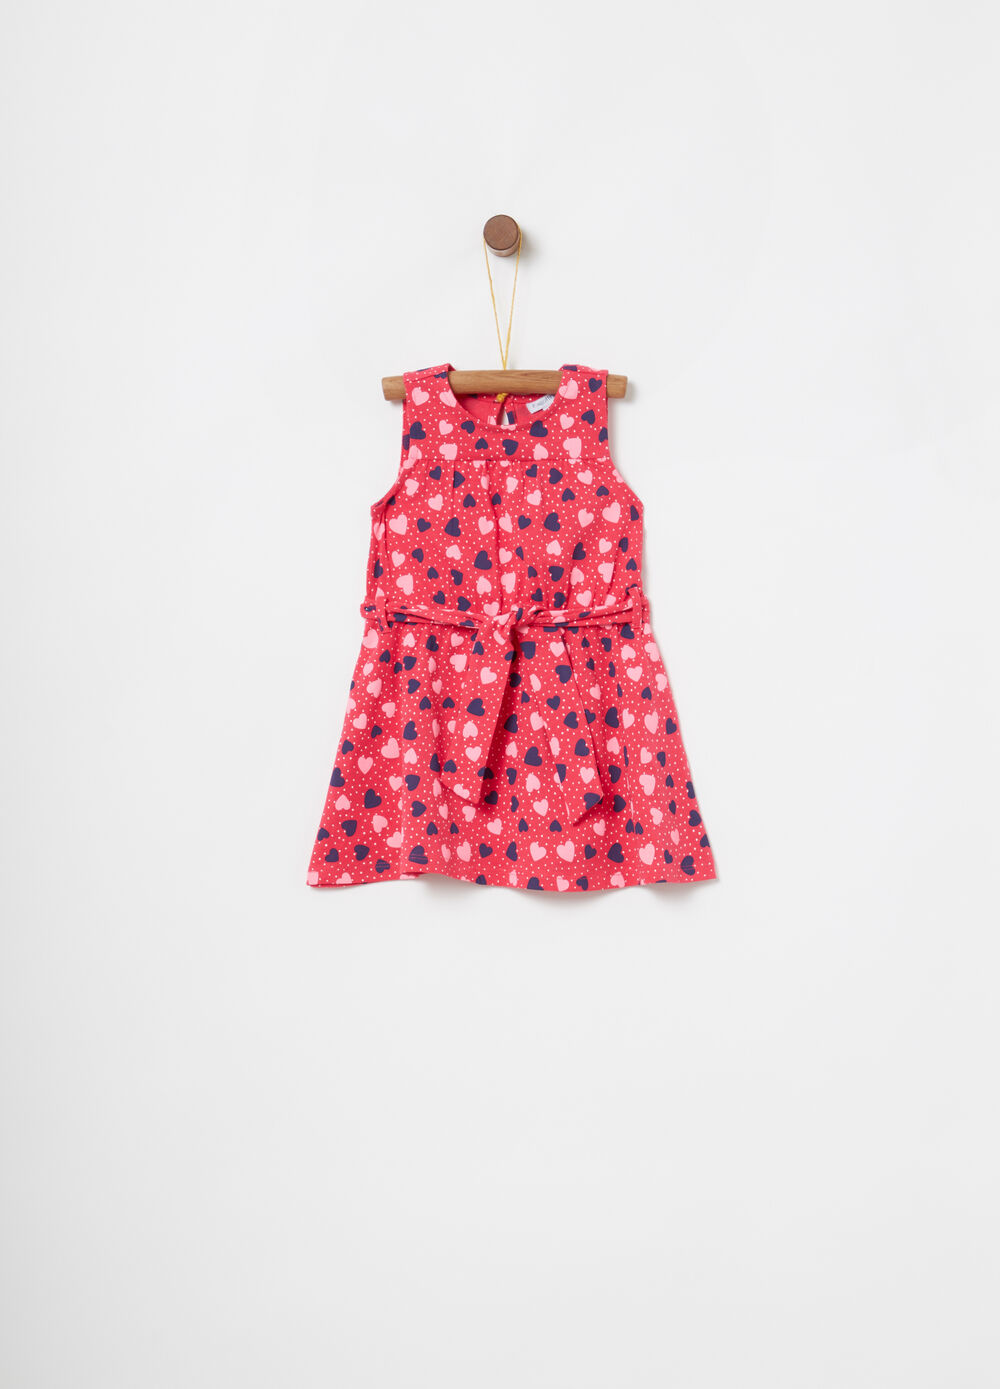 Dress with sash and polka dot and heart pattern